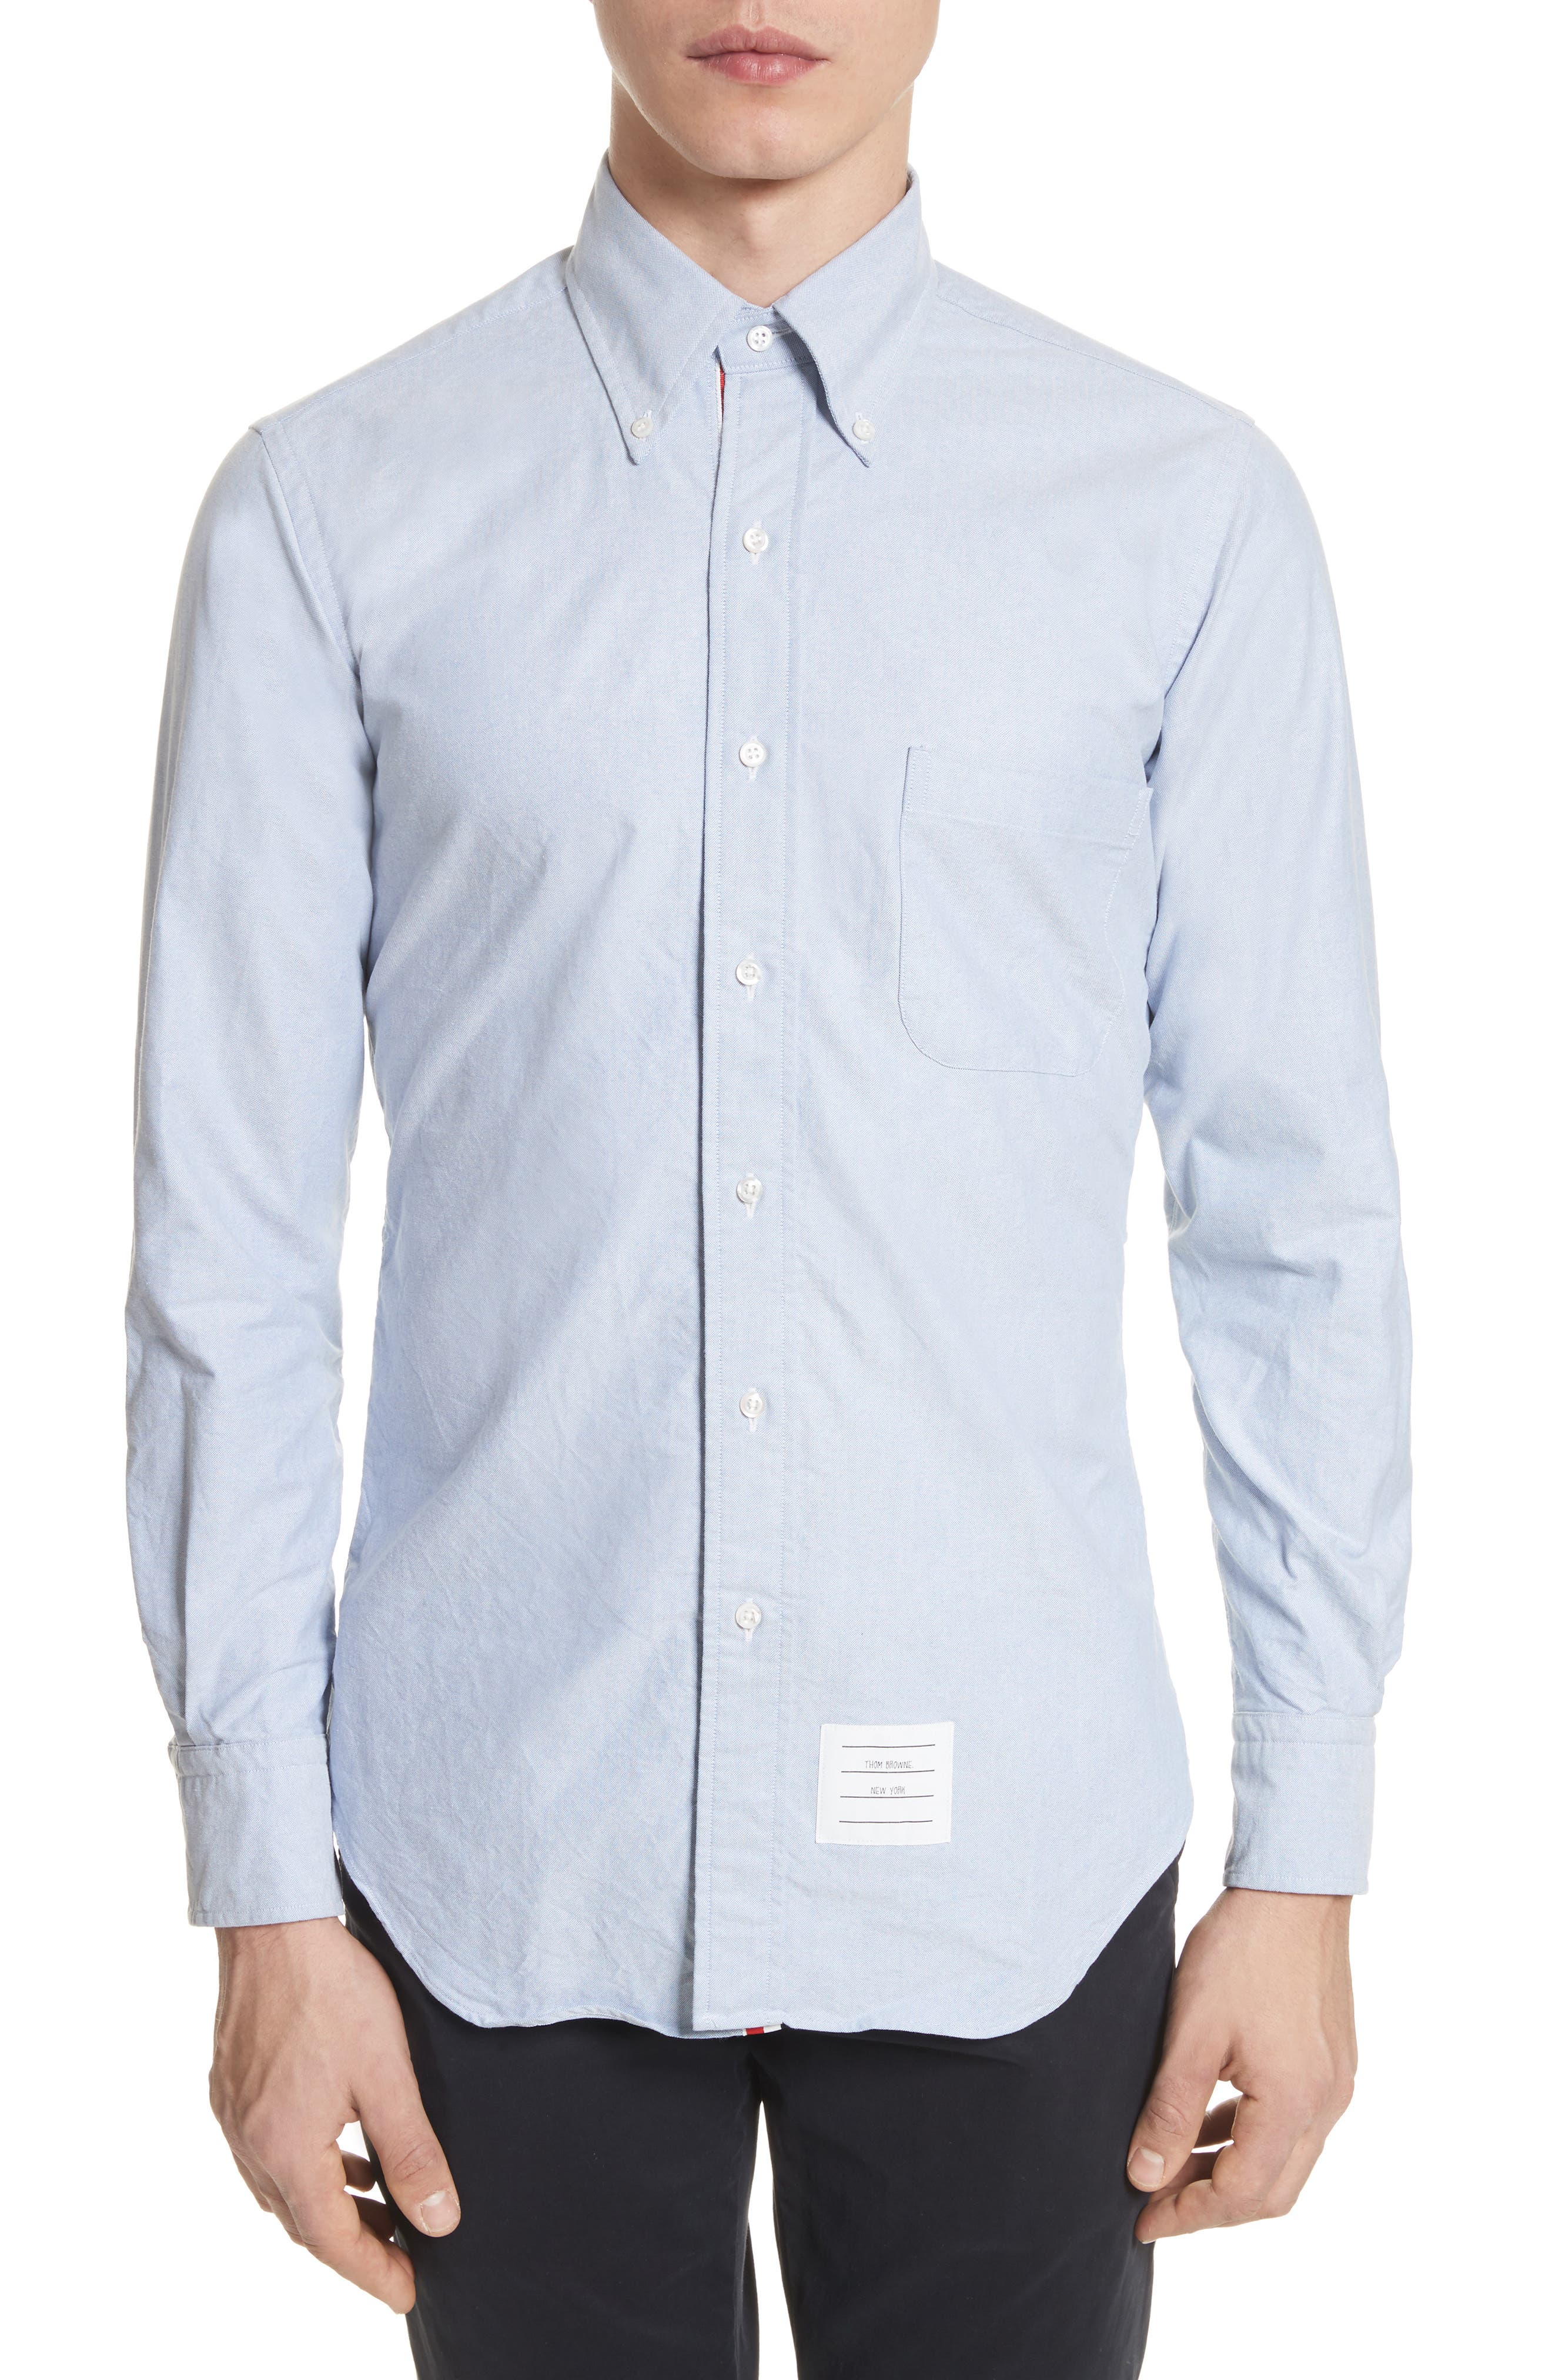 Main Image - Thom Browne Extra Trim Fit Oxford Shirt with Grosgrain Trim